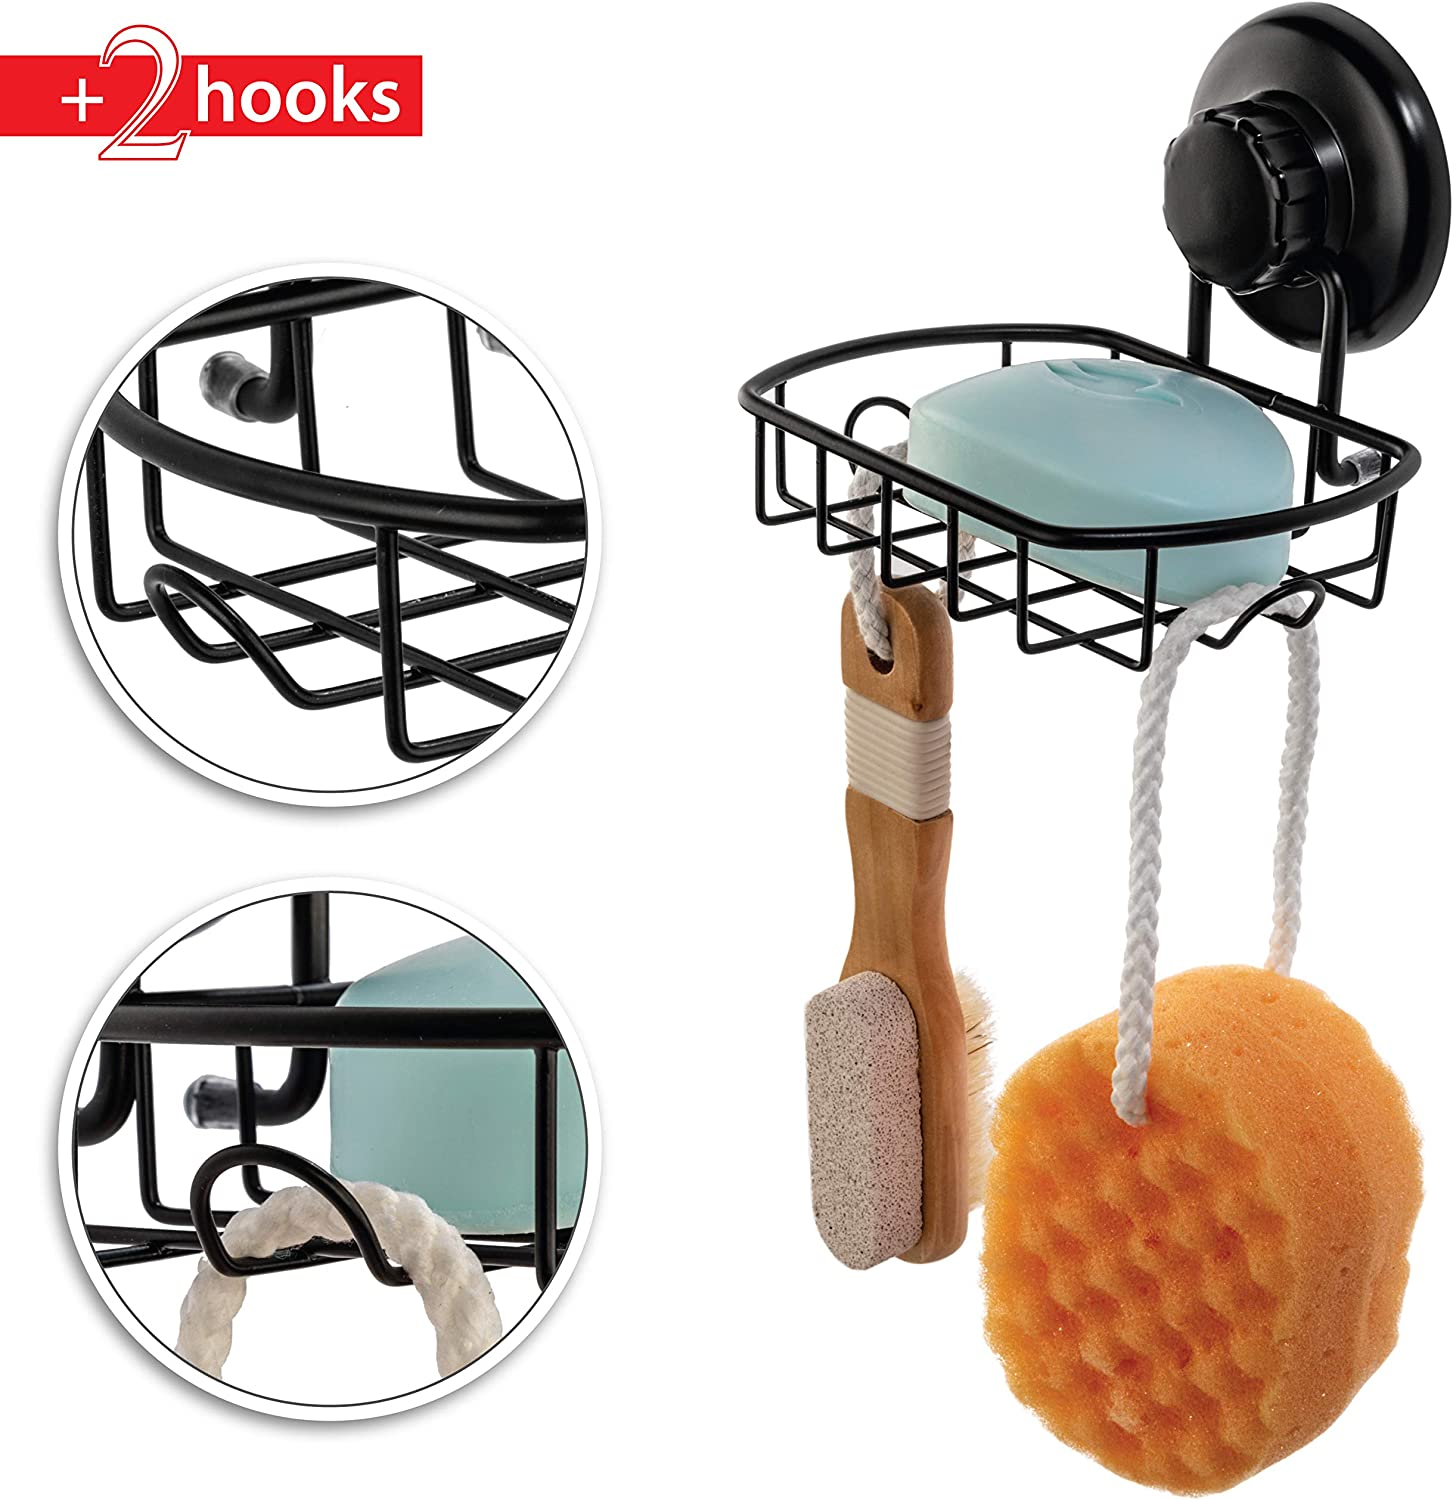 HASKO accessories Suction Soap Dish with Hooks Stainles SS304 Shower Soap Dish Powerful Vacuum Suction Cup Soap Holder Black Soap Basket Sponge Holder for Bathroom /& Kitchen